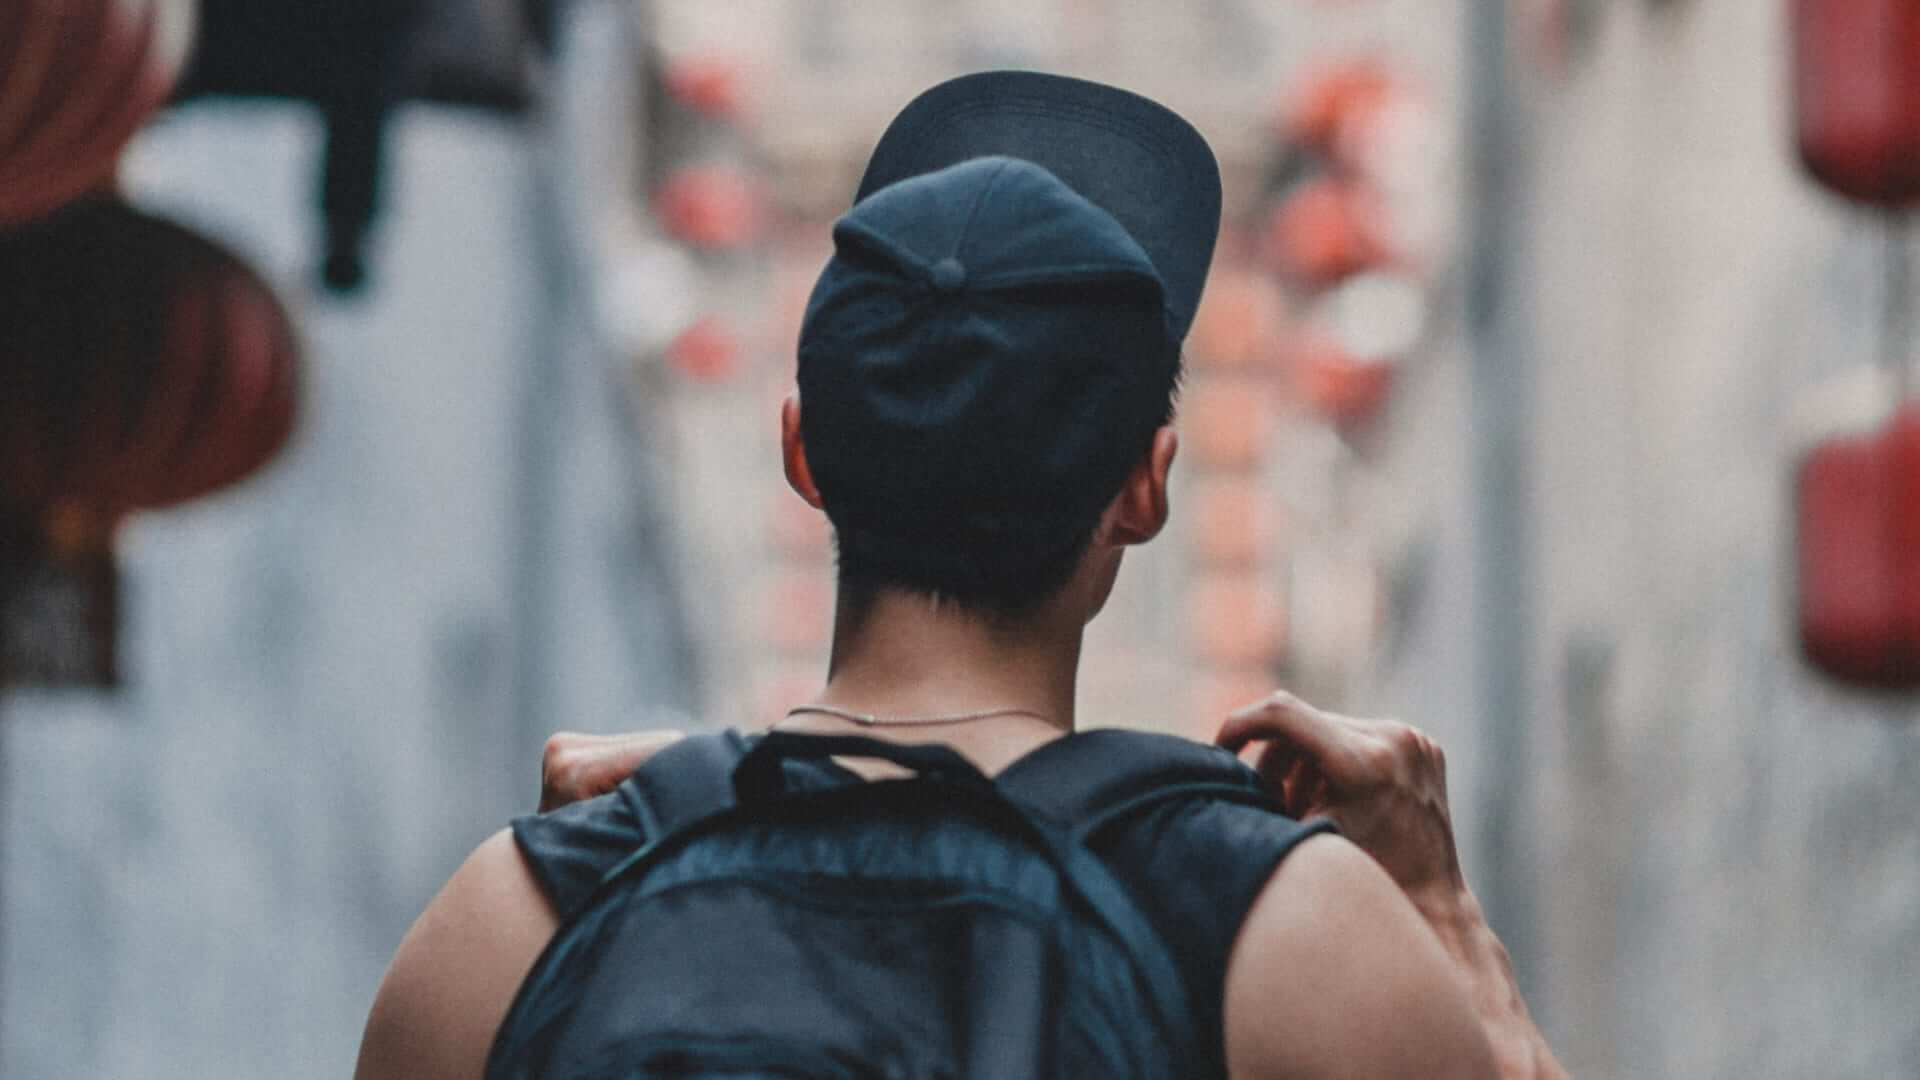 A boy wearing black clothes, a black backpack and a black cap is walking through a street in China.